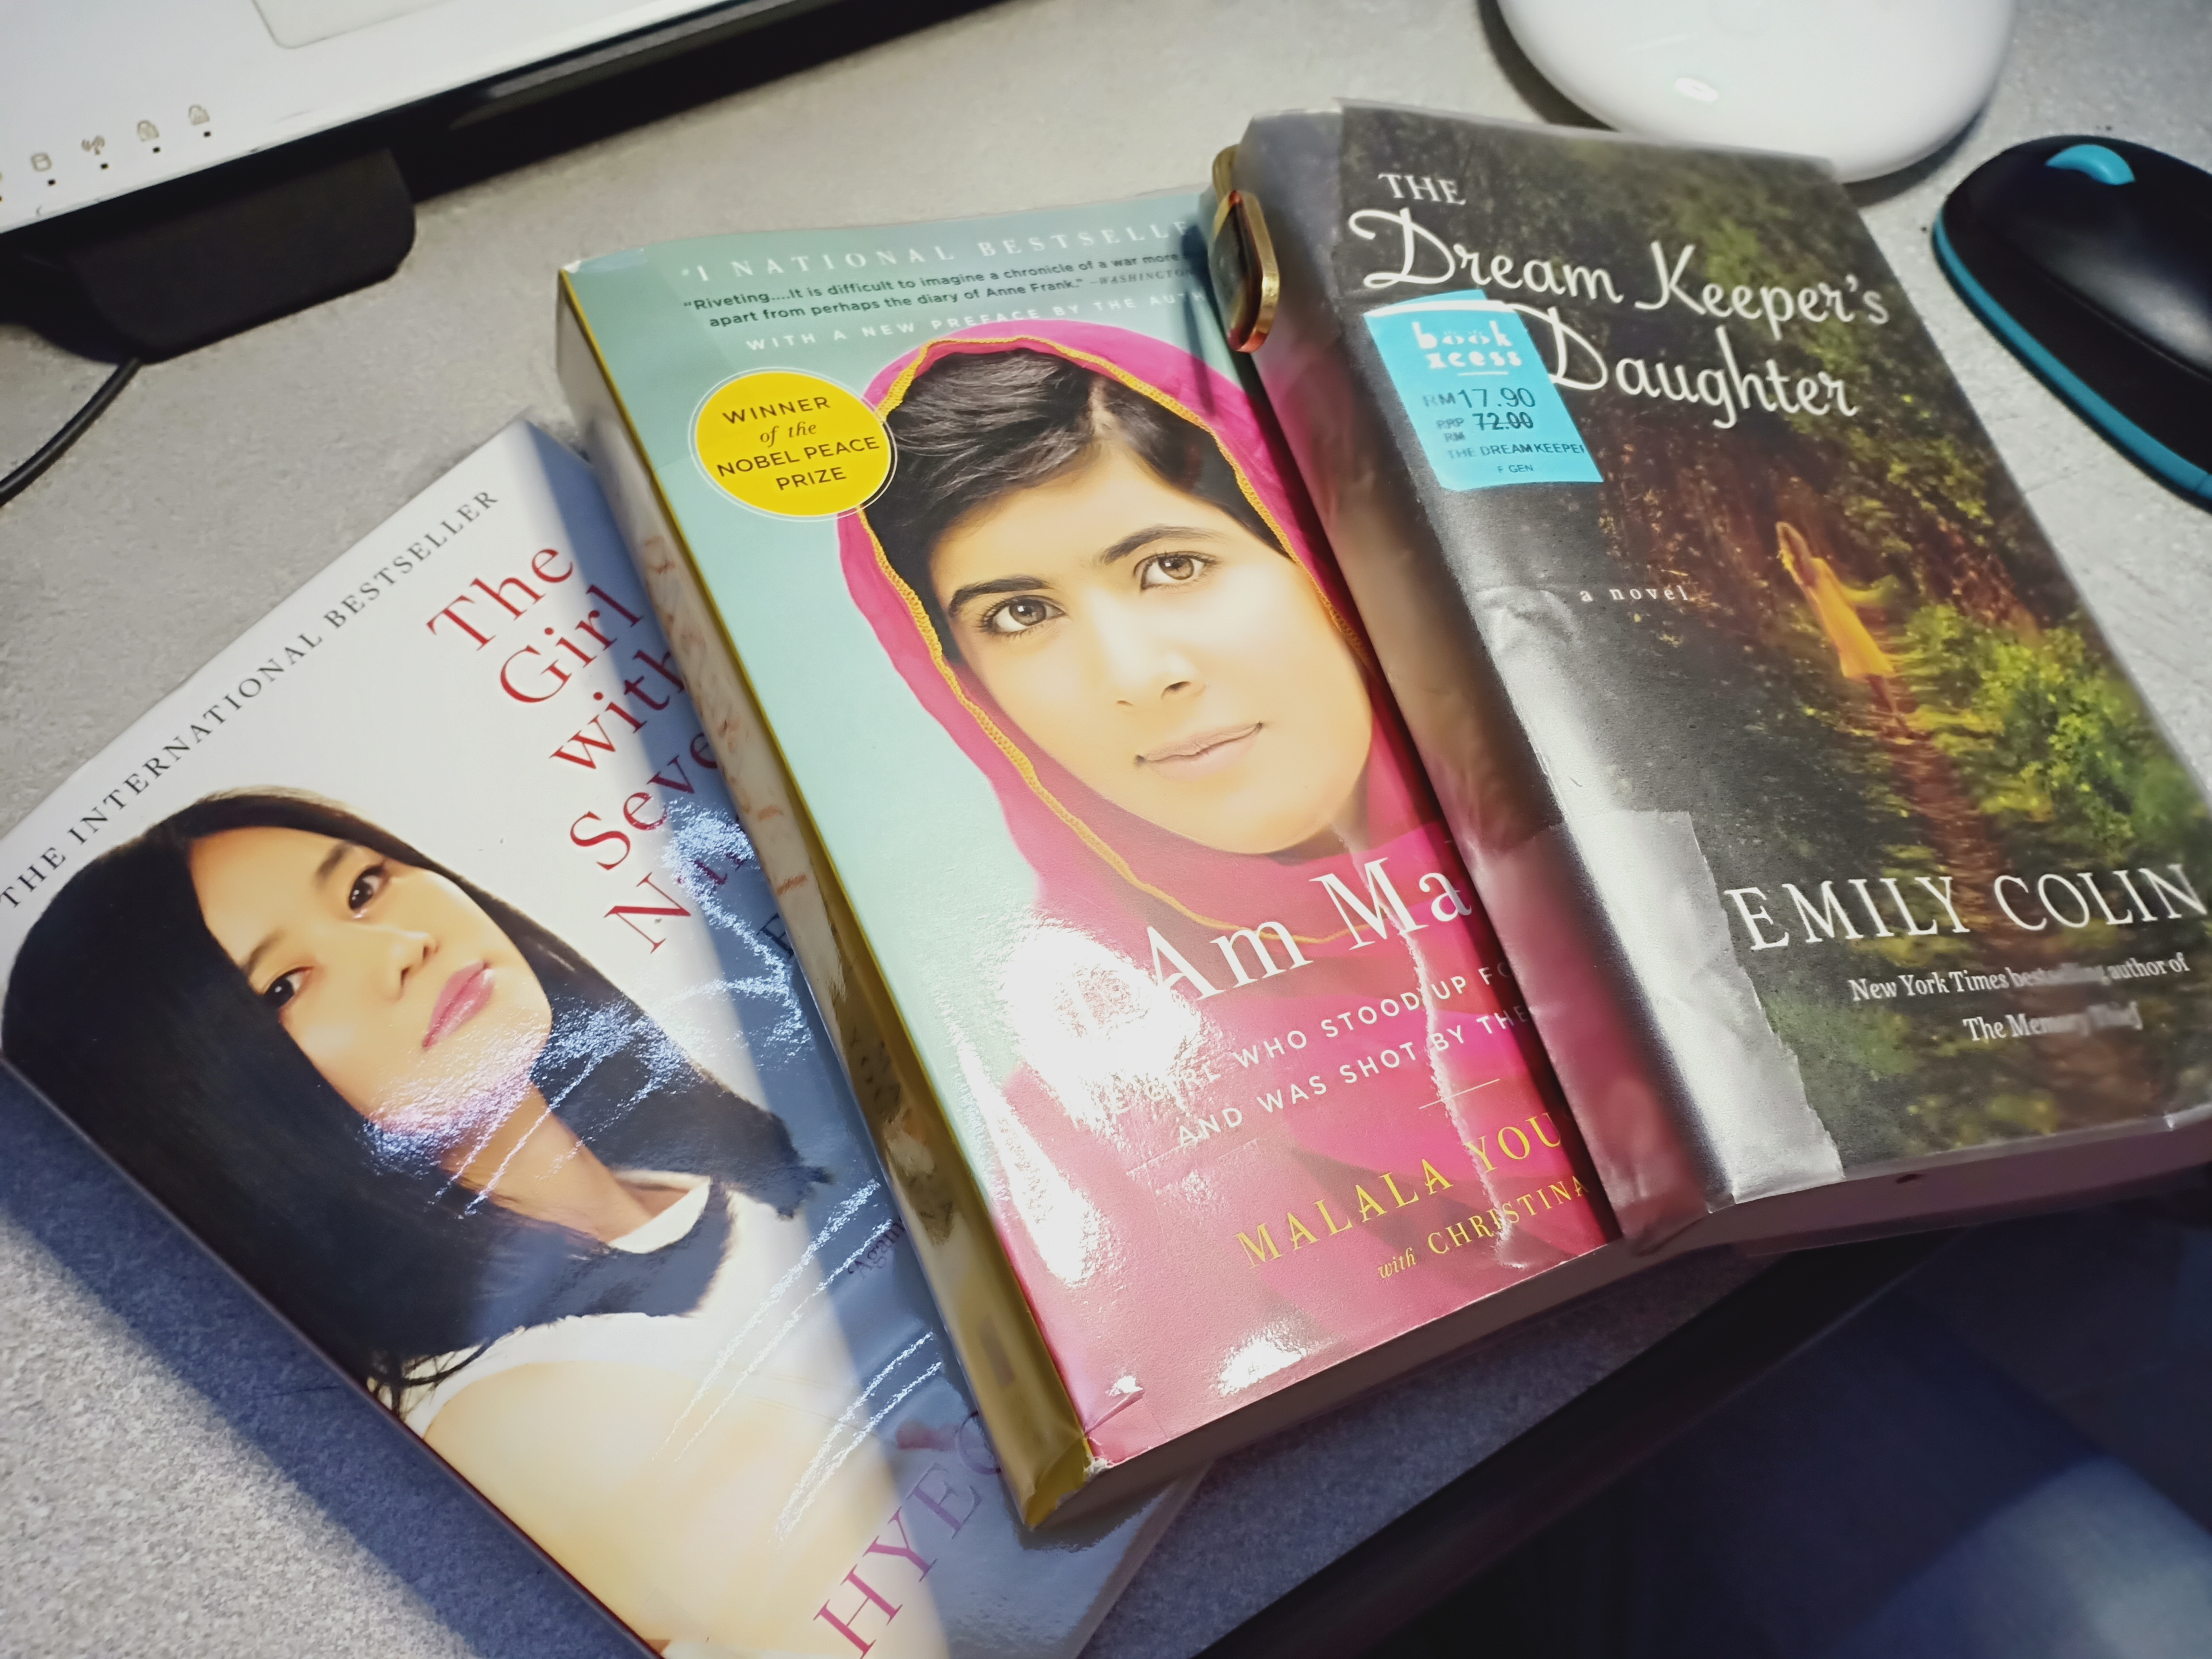 Books on my table - my next reads